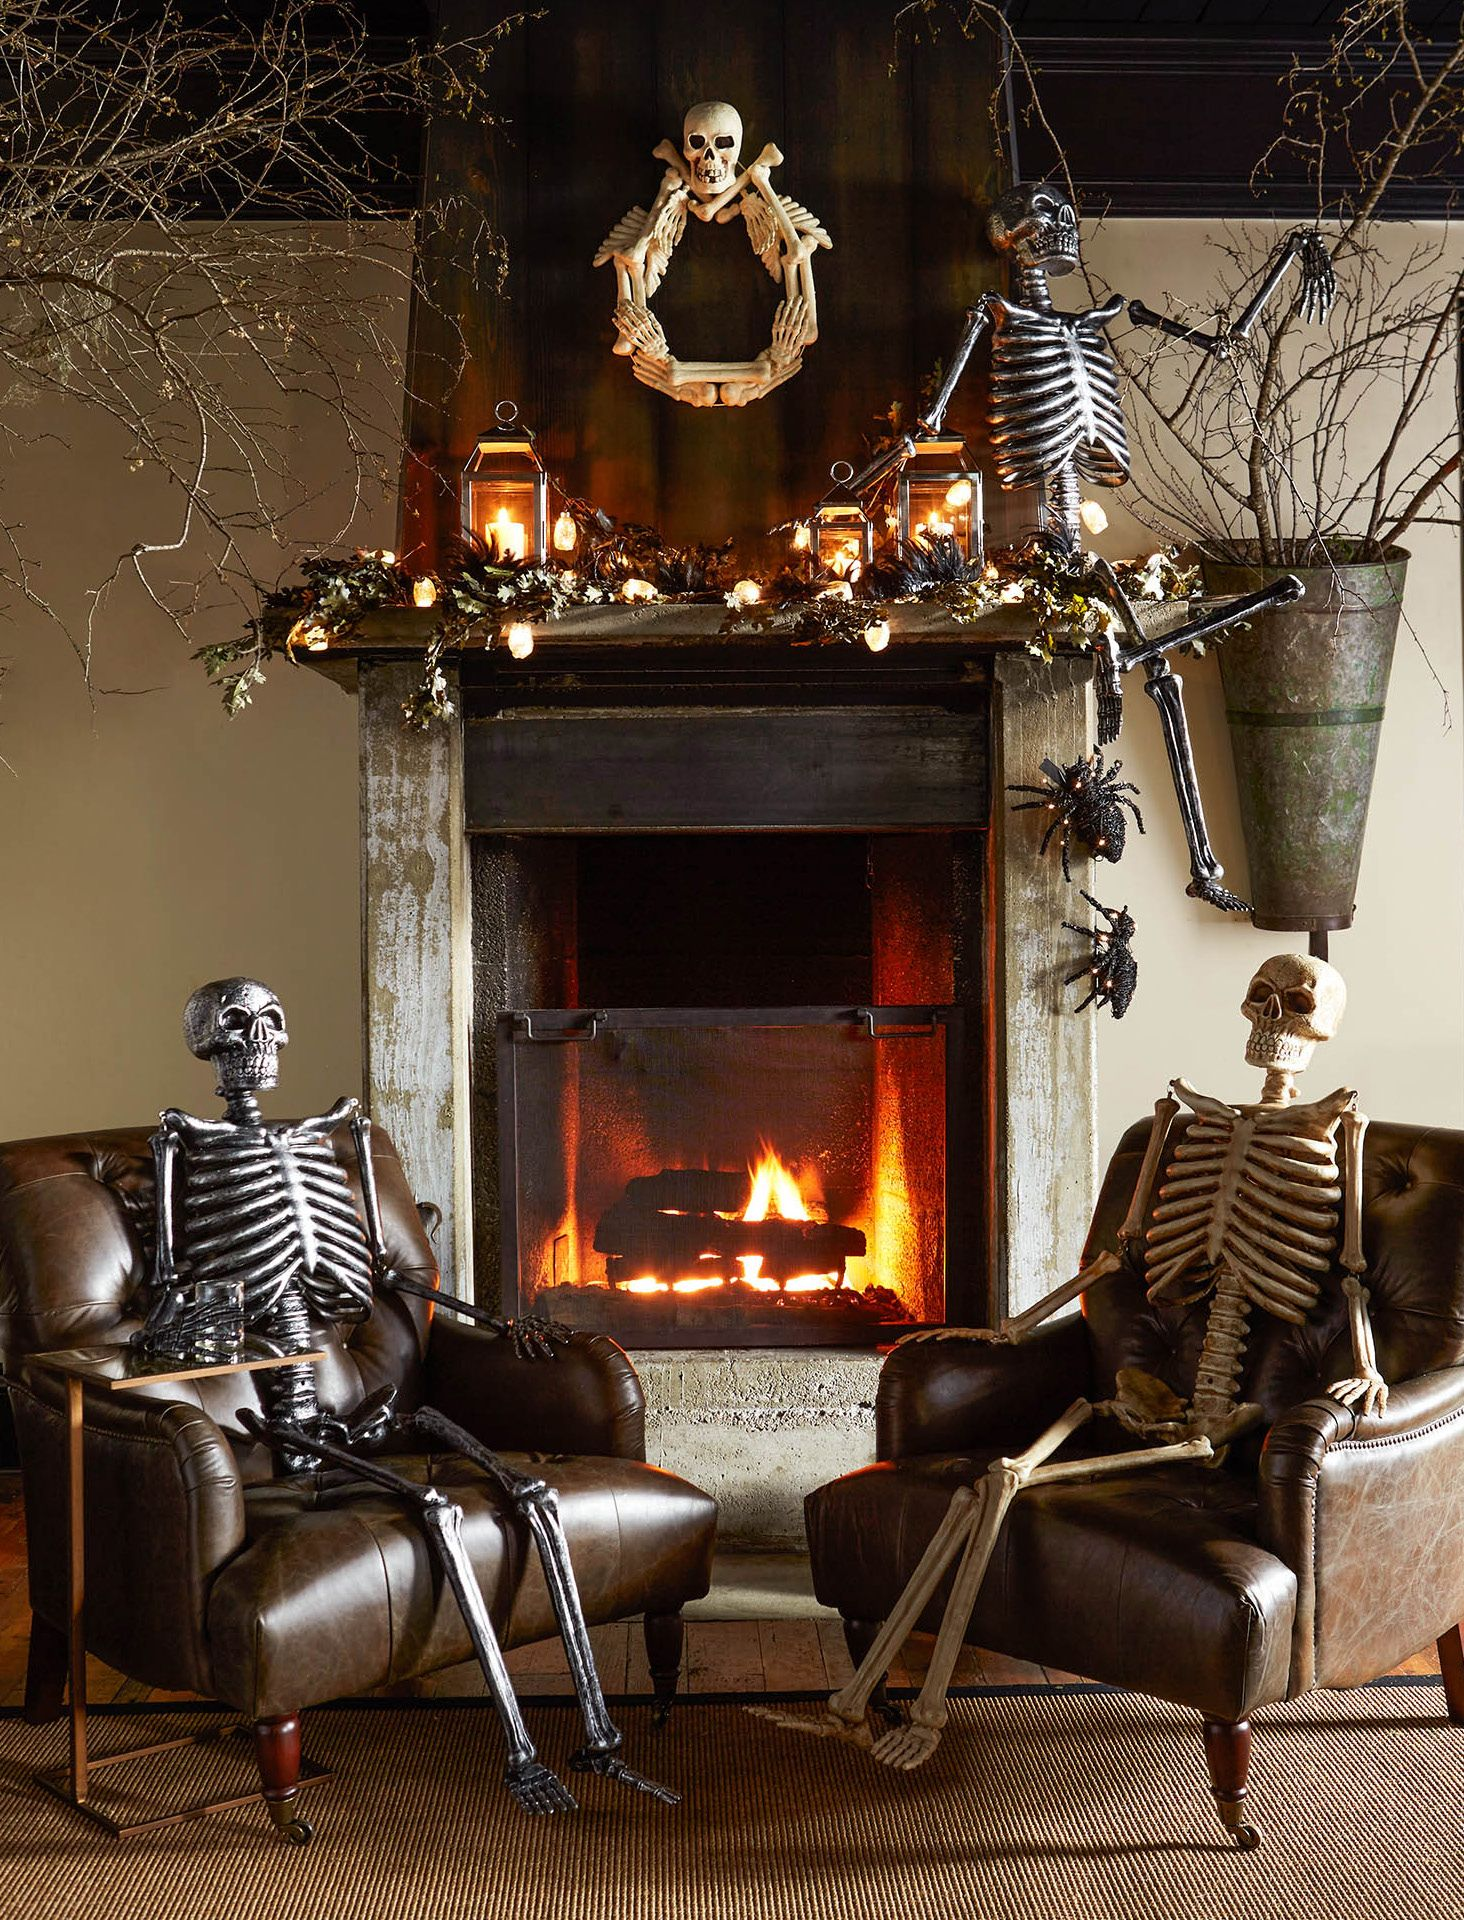 Outdoor Mr Bones Natural Halloween Mantel Halloween